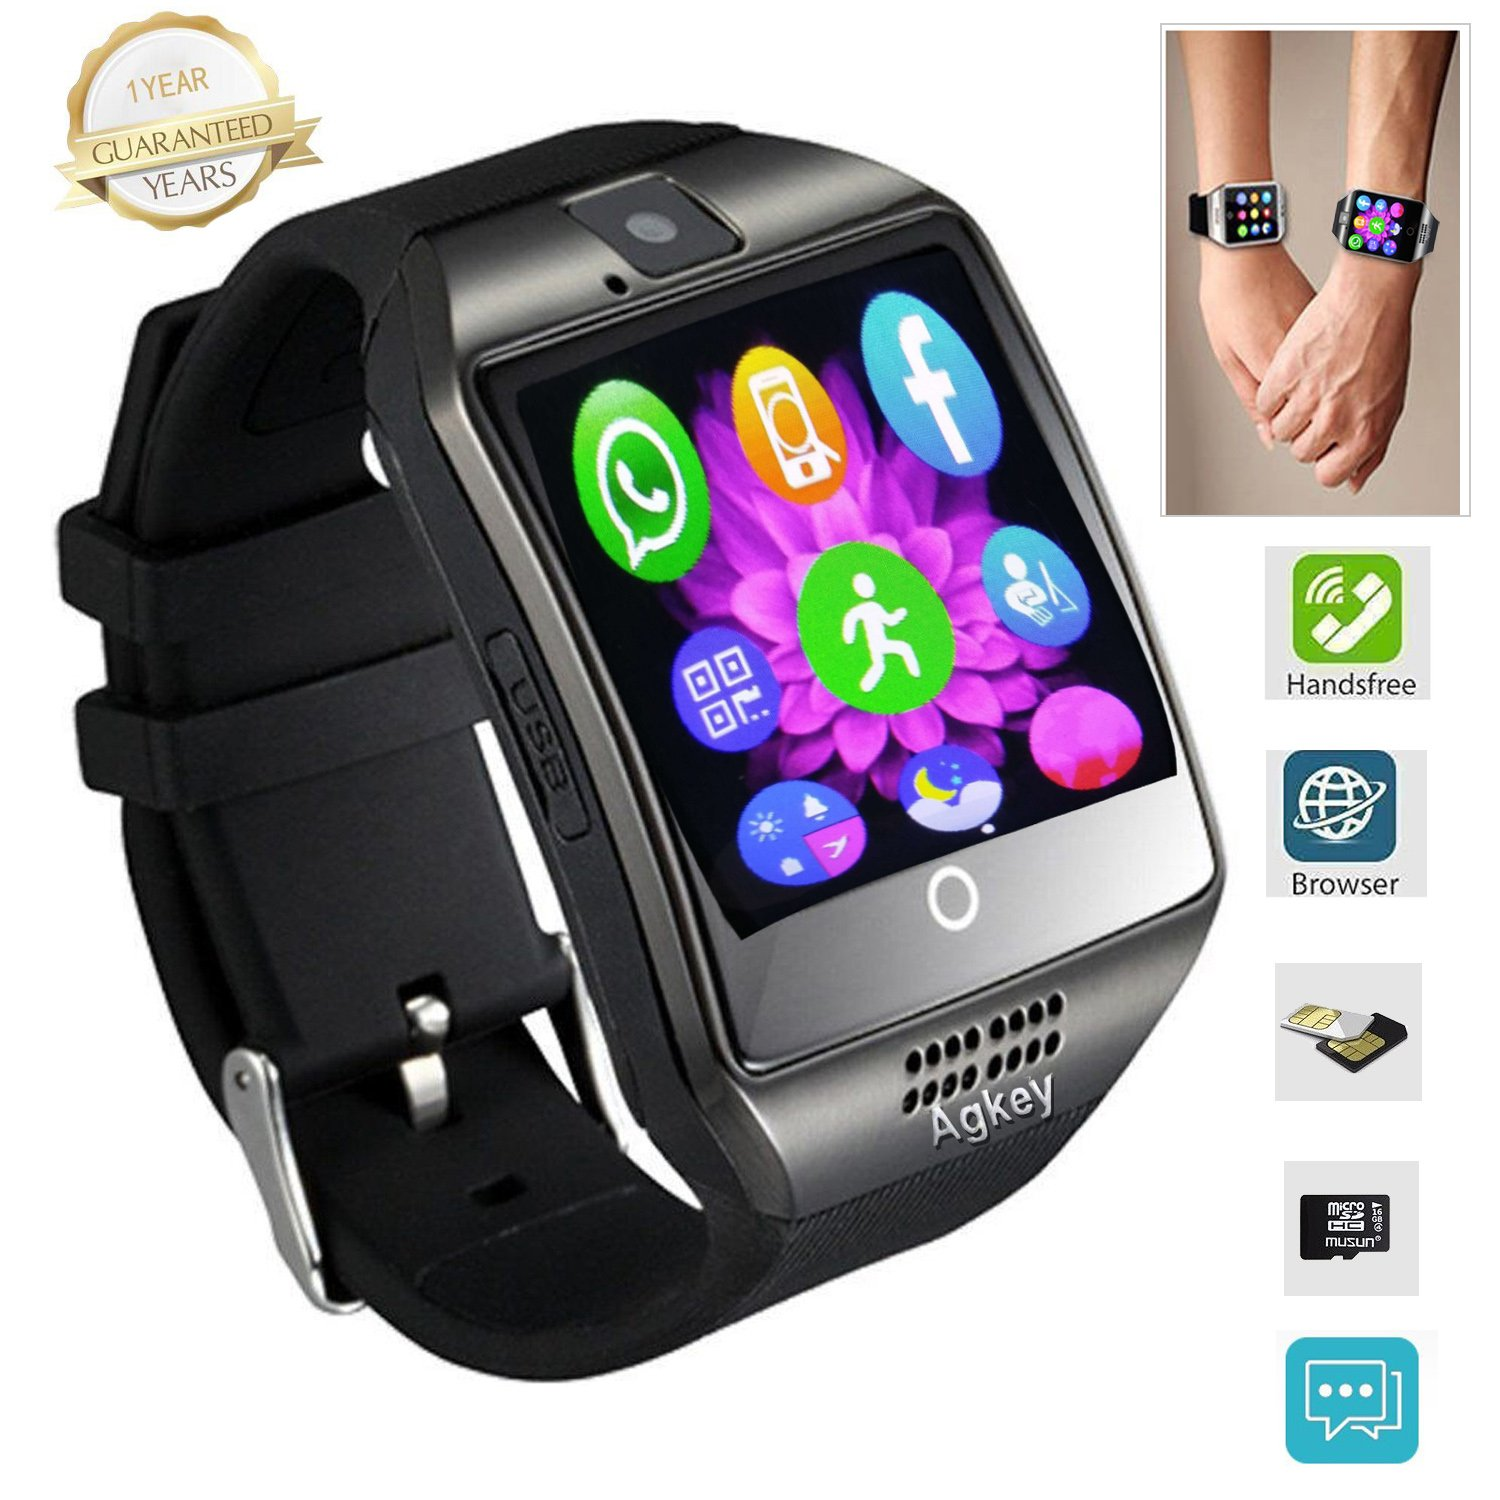 jet mobile amazon accessories manufacturer phone phones discontinued cell packaging gear dp by samsung black smartwatch retail galaxy watches com